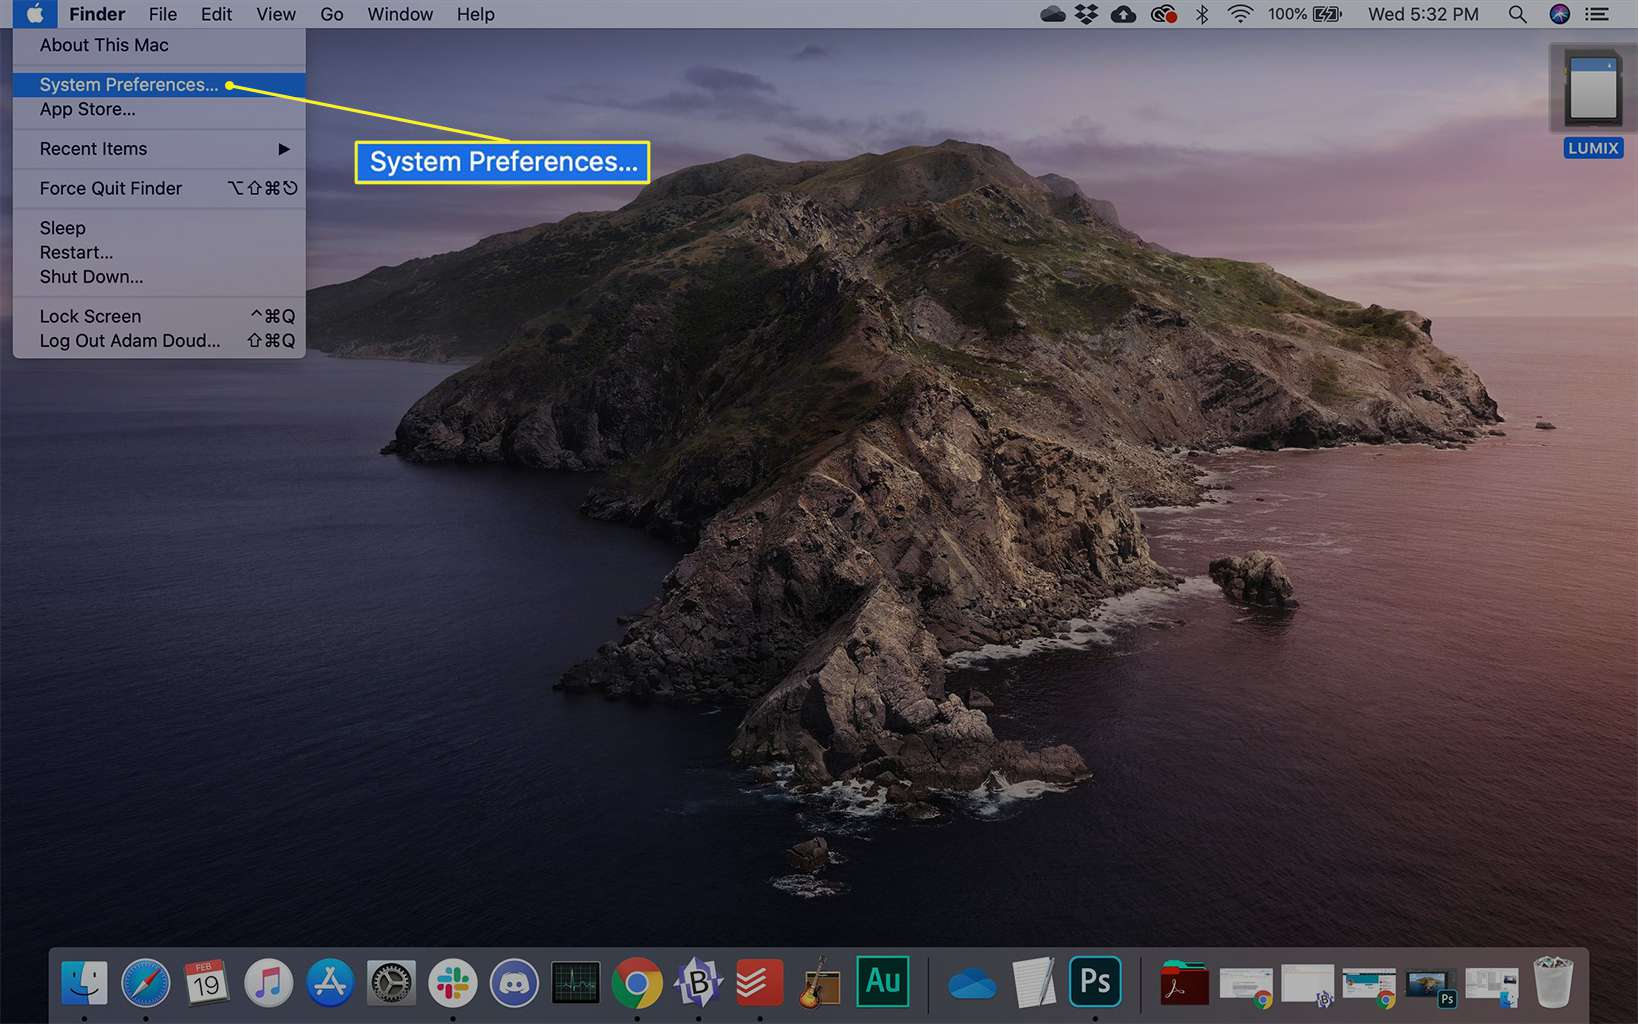 System Preferences highlighted in the Apple menu on a Mac